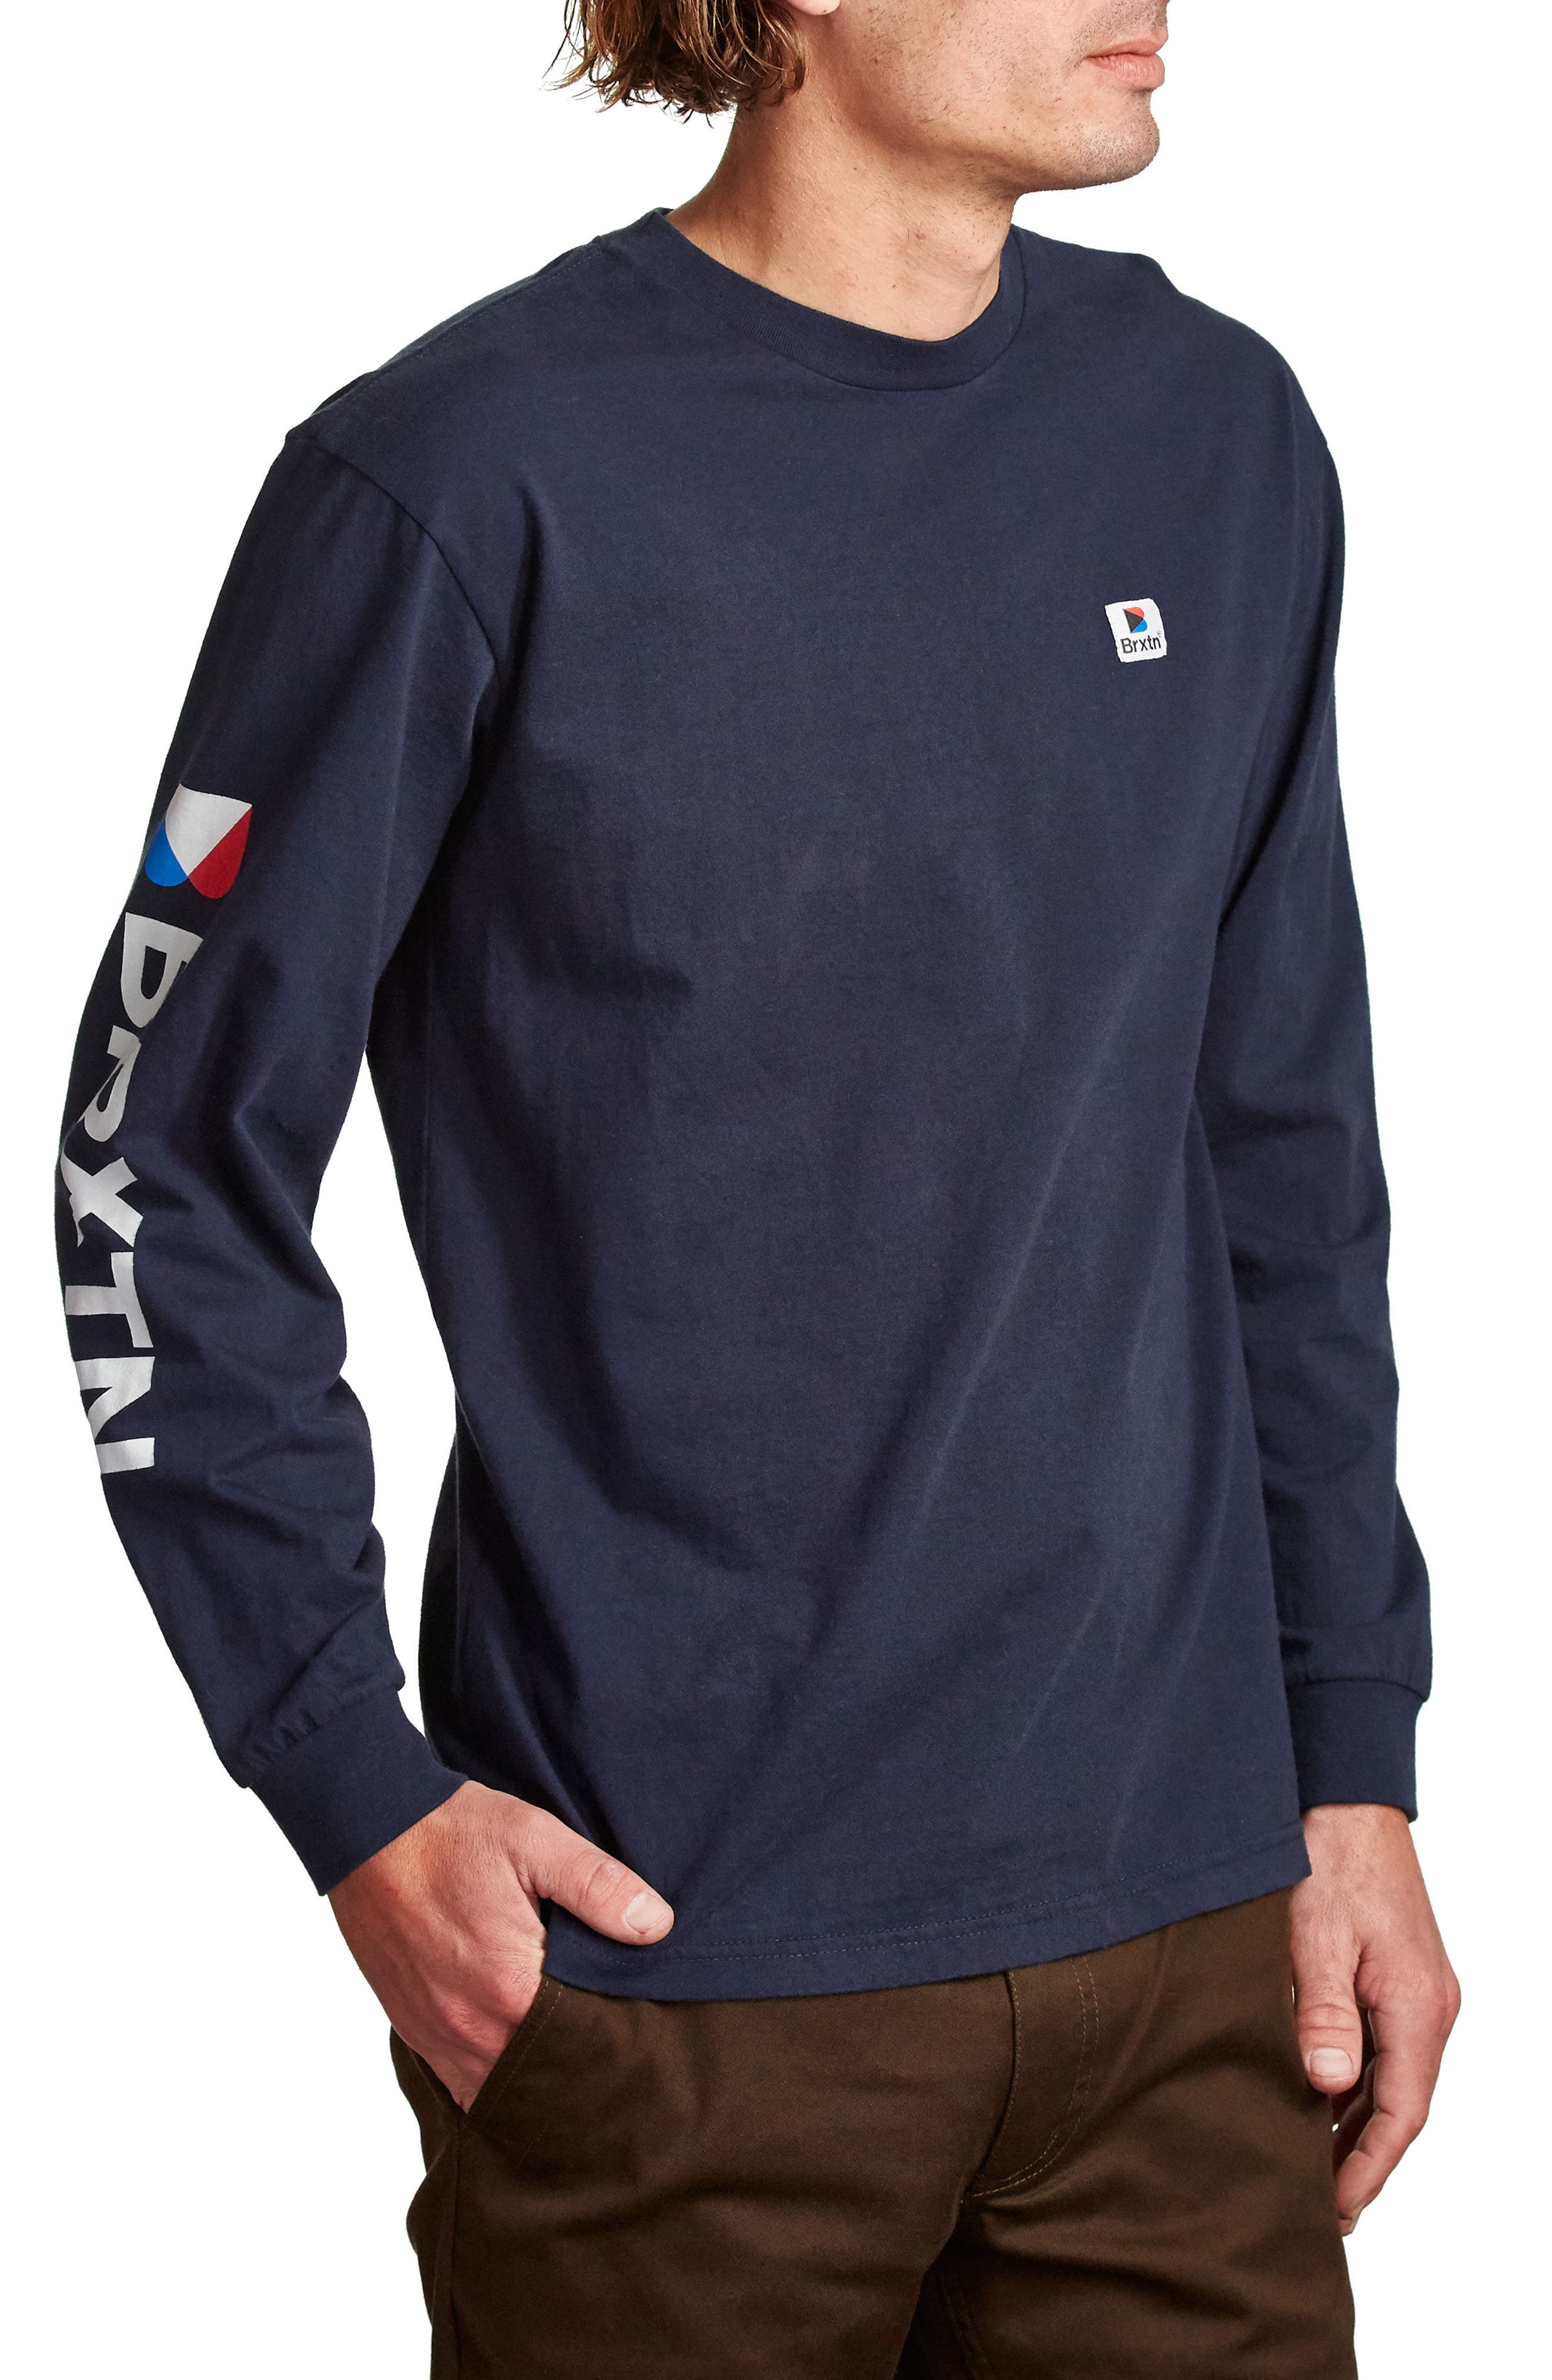 Stowell T-Shirt,                             Alternate thumbnail 3, color,                             Navy